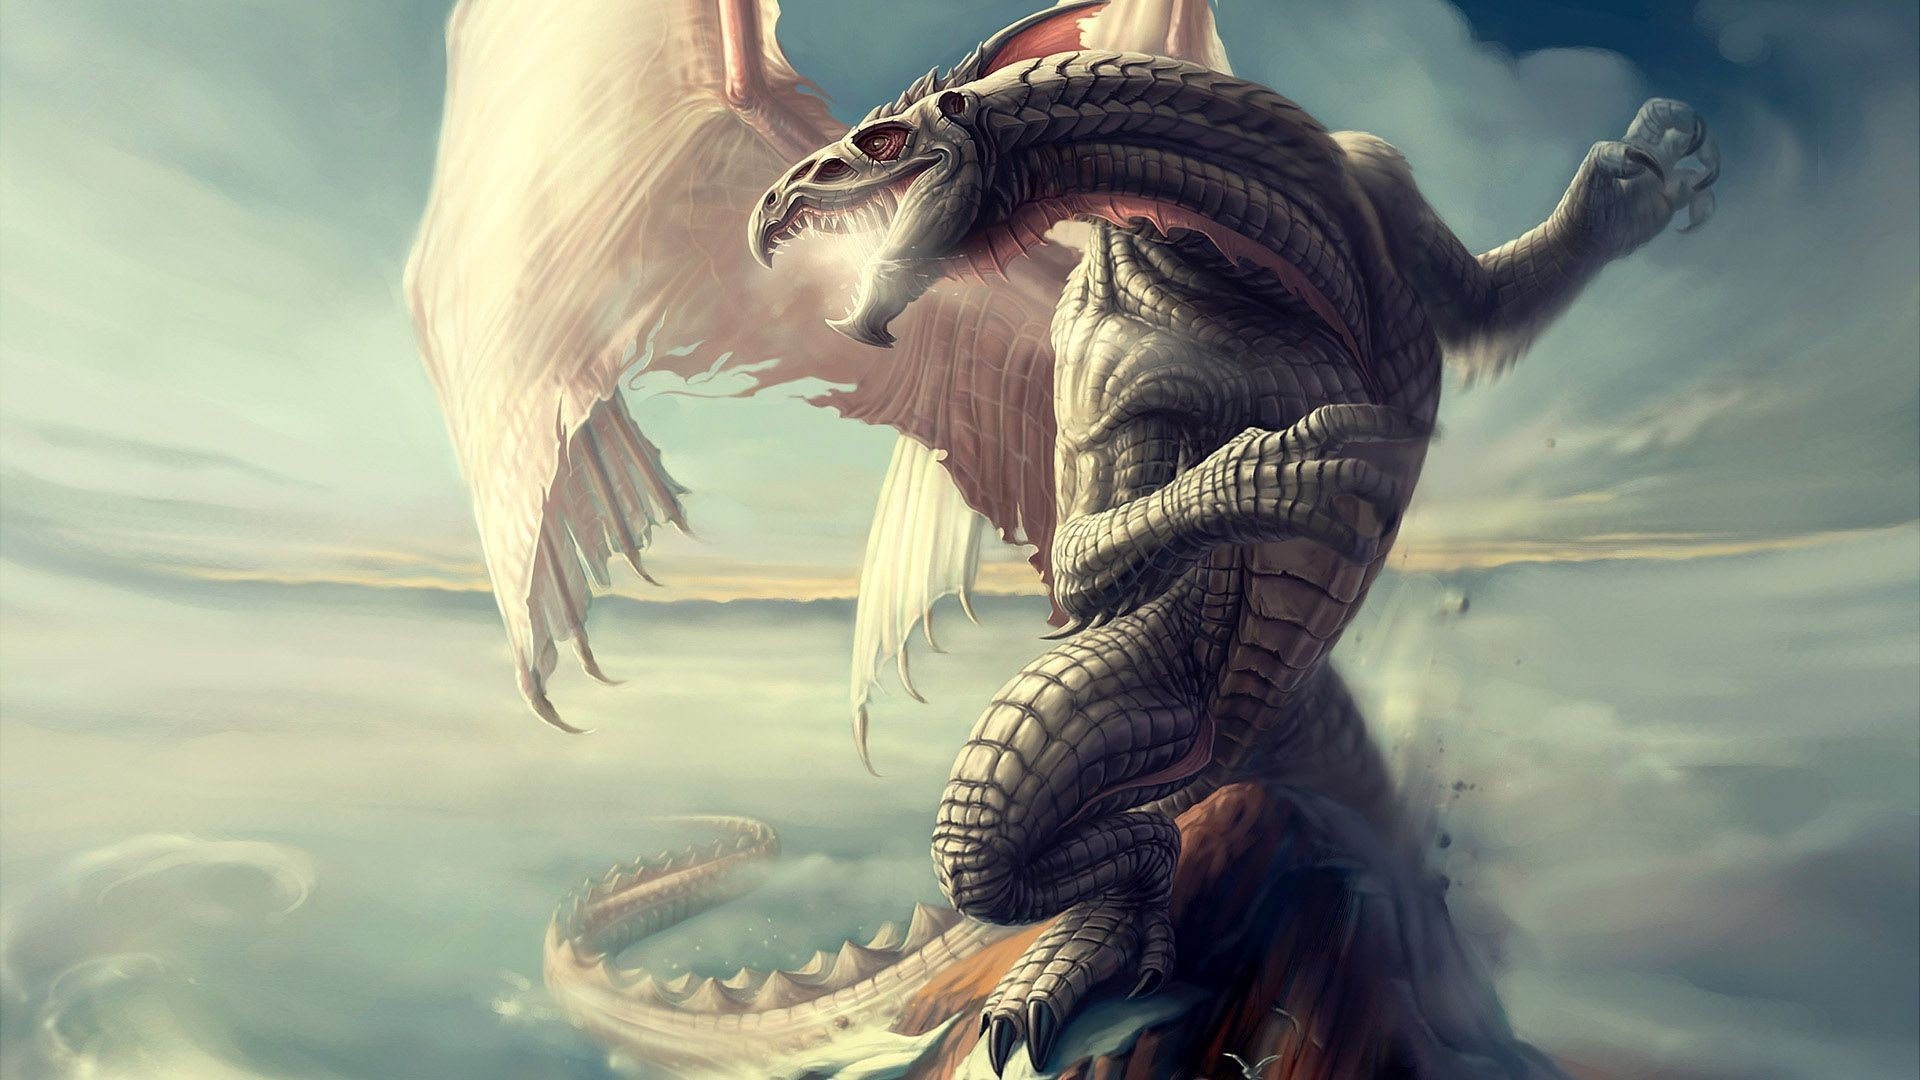 How To Make Live Wallpaper Work Iphone X Dragon Wallpaper 1920x1080 183 ① Download Free Cool